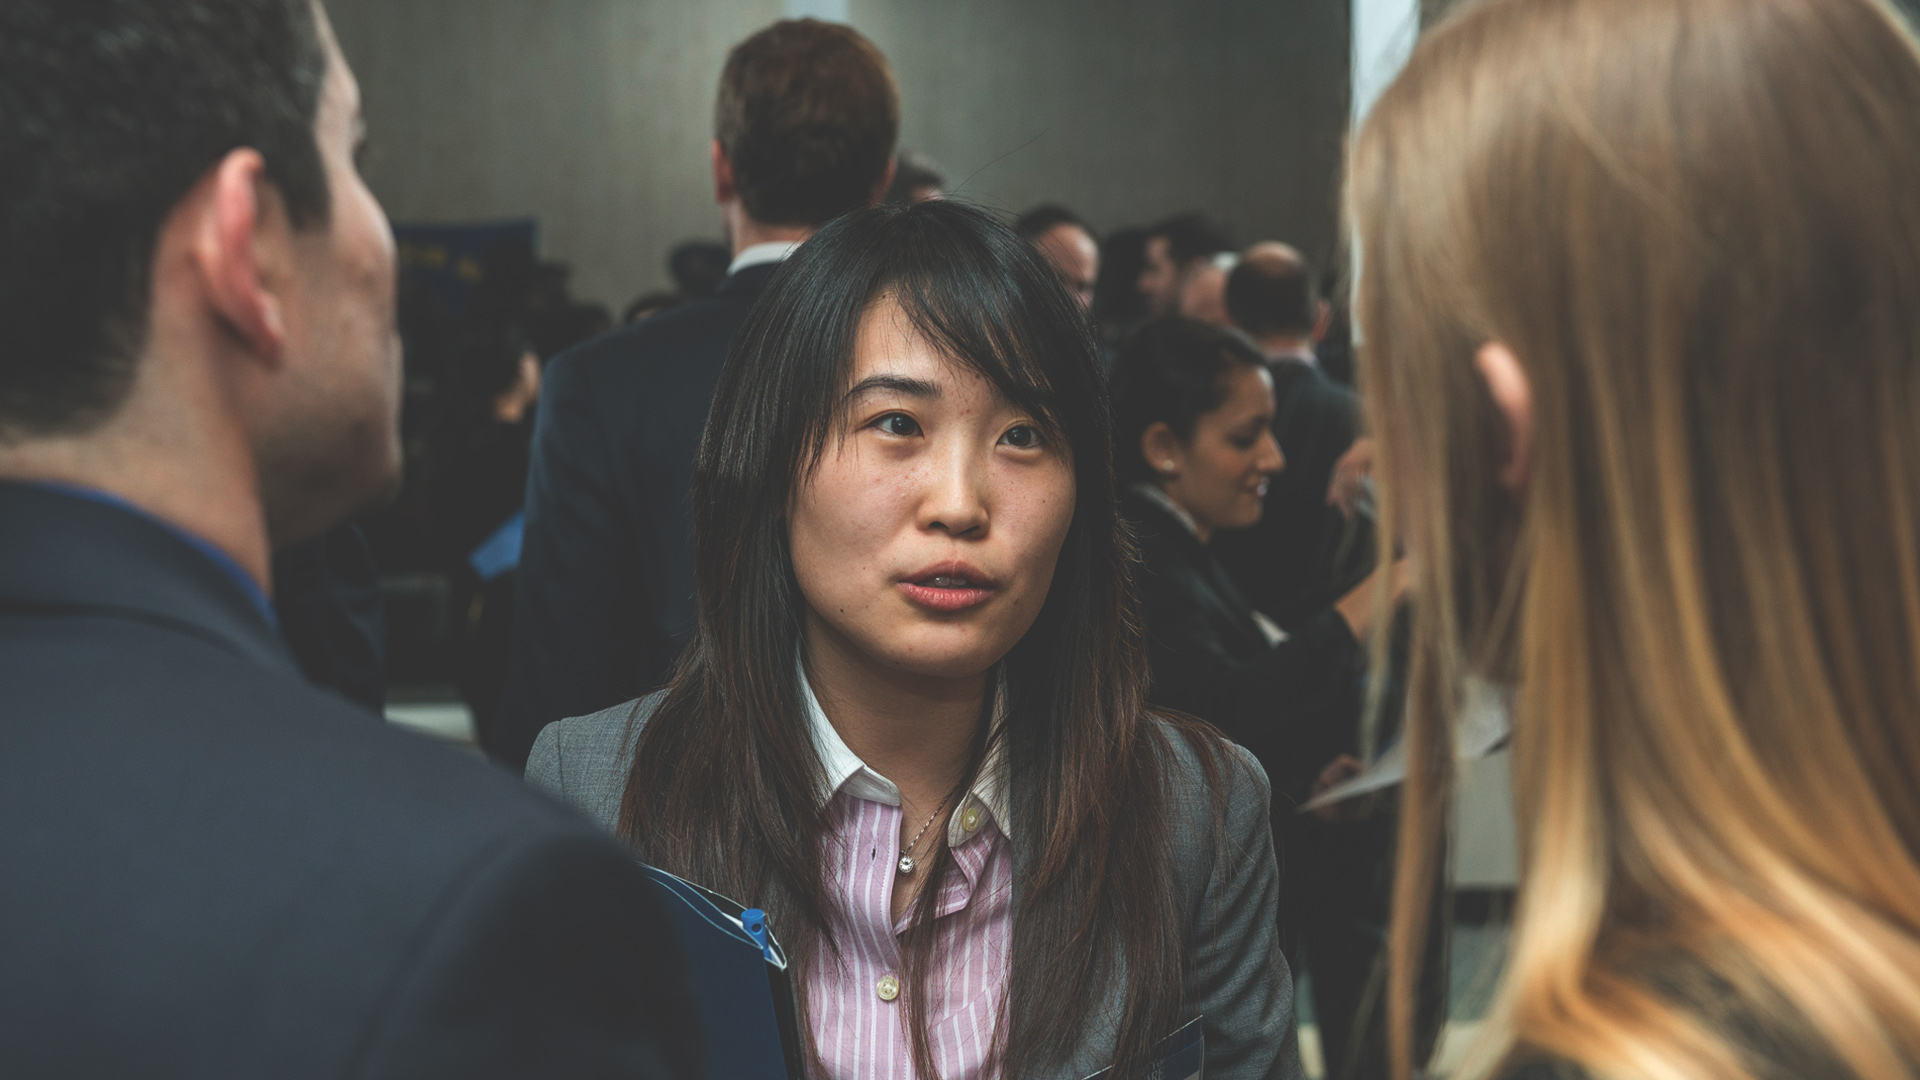 woman soeaking to two people at networking event